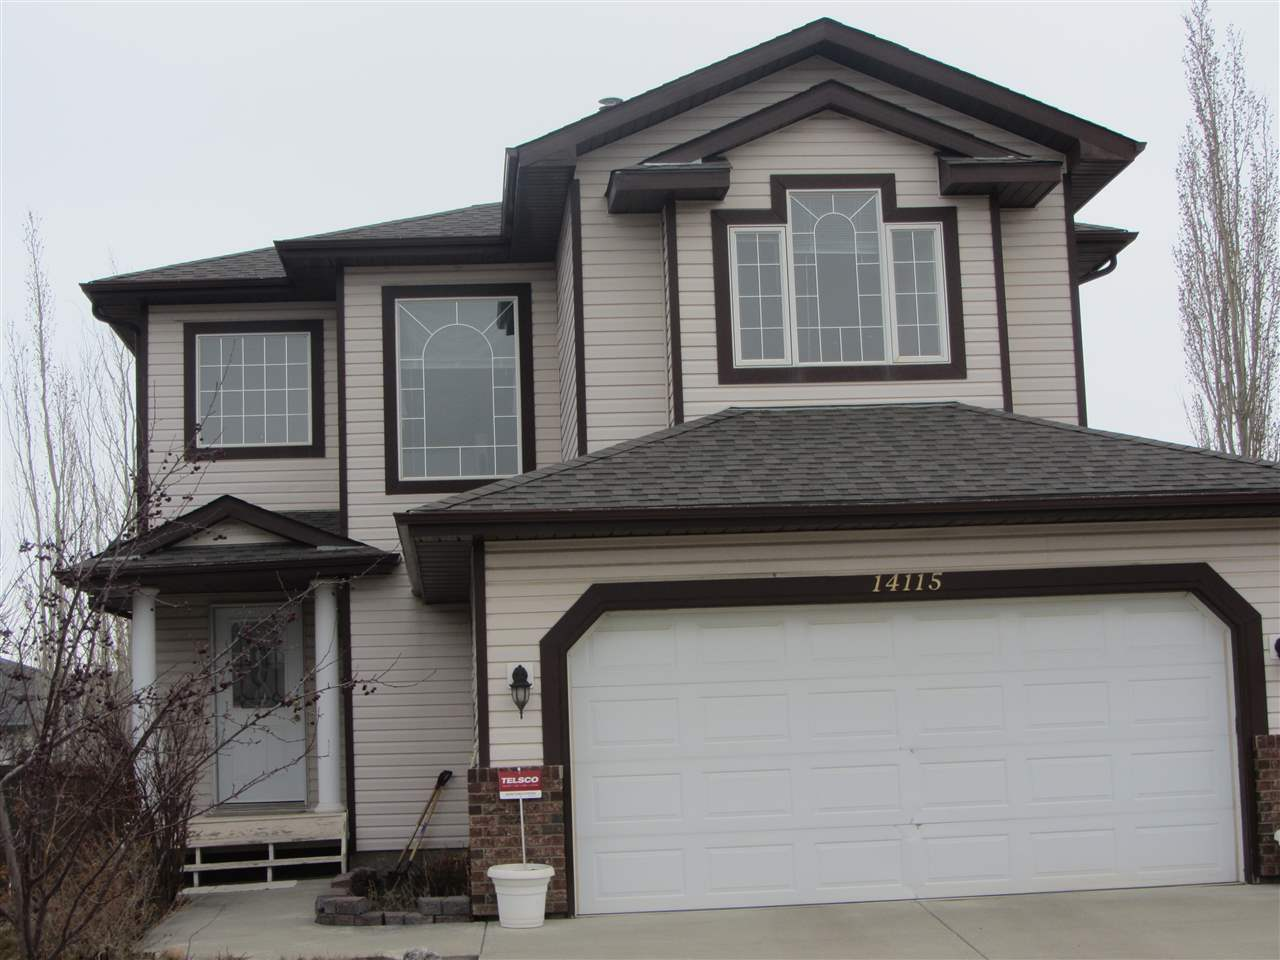 MLS® listing #E4149772 for sale located at 14115 129 Street